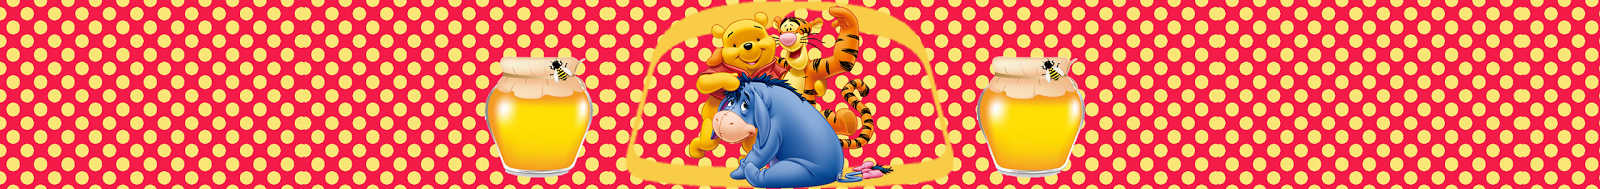 Cute Winnie the Pooh: Free Download Candy Bar Labels.